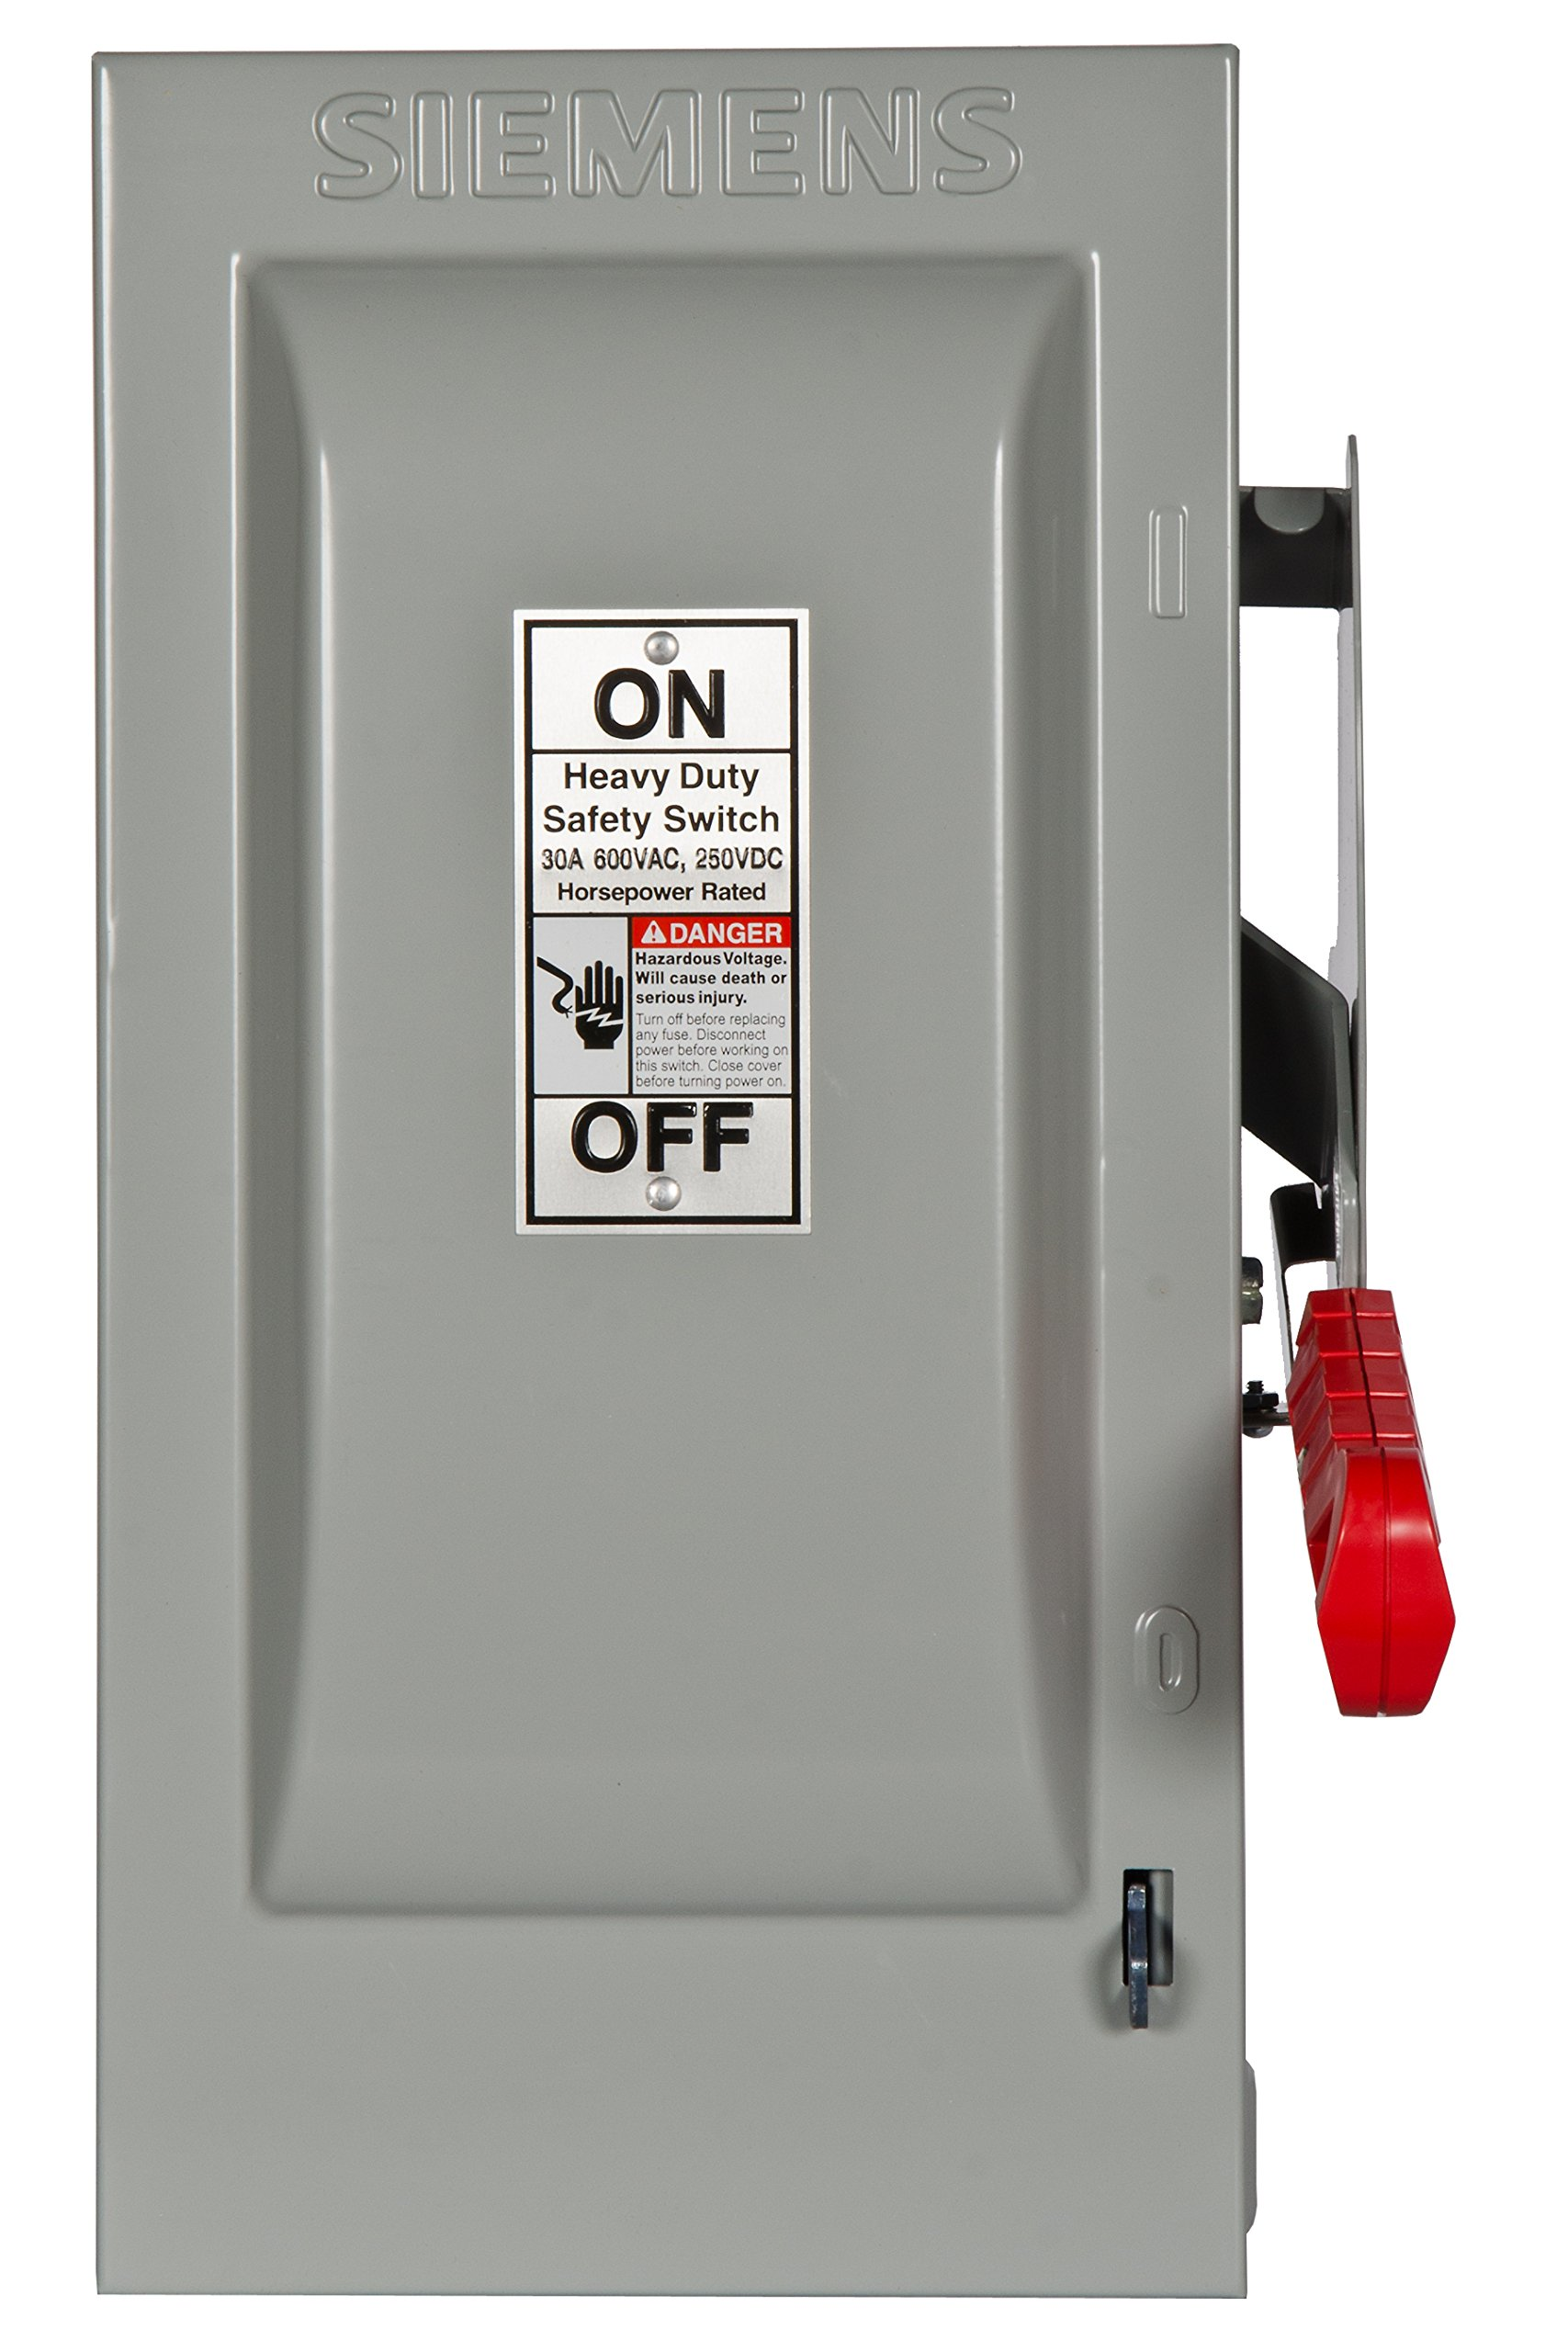 Siemens HF361N 30-Amp 3 Pole 600-volt 4 Wire Fused Heavy Duty Safety Switches